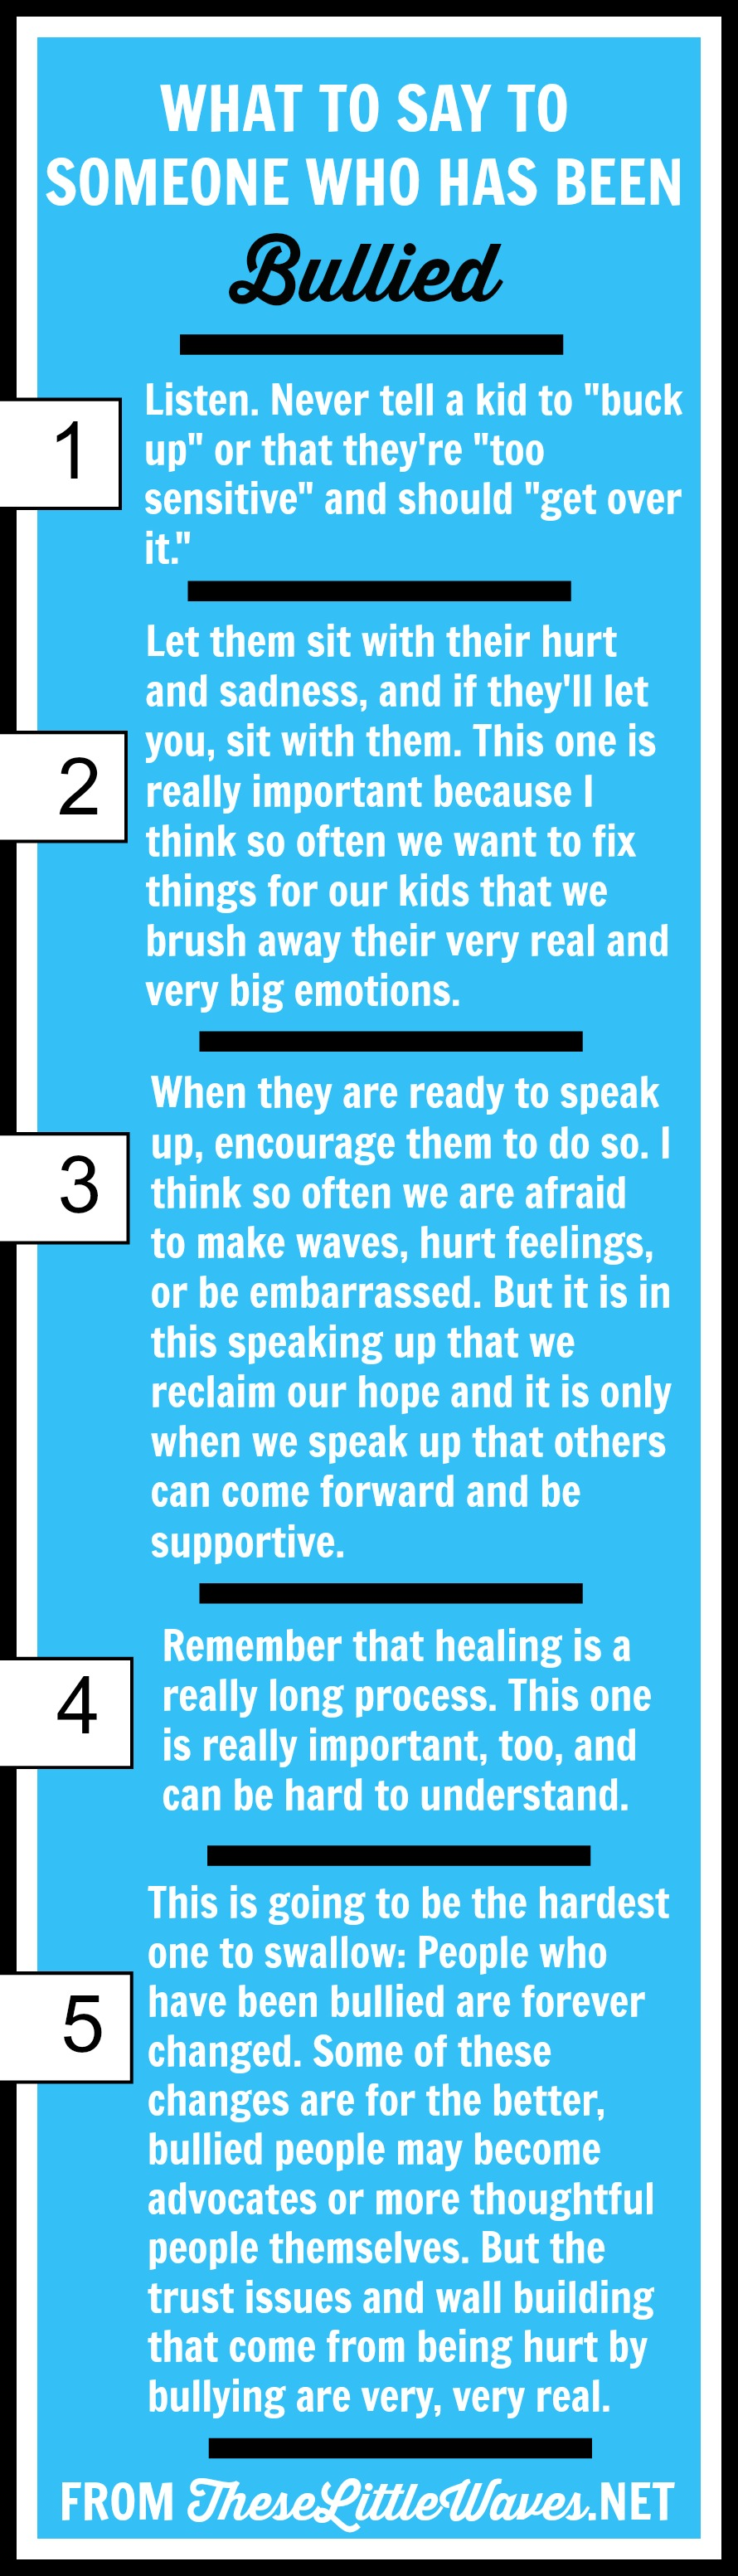 Statistics say that 4 out of 10 kids have been cyber bullied. So the fact is that we all know someone who has been bullied. It is so important to be there for kids who are bullied. They need support! Instead of focusing on what not to say to someone who is buried, here are 5 things TO say to help someone who is bullied. Click through to download a cheat sheet to start talking to kids about bullying!